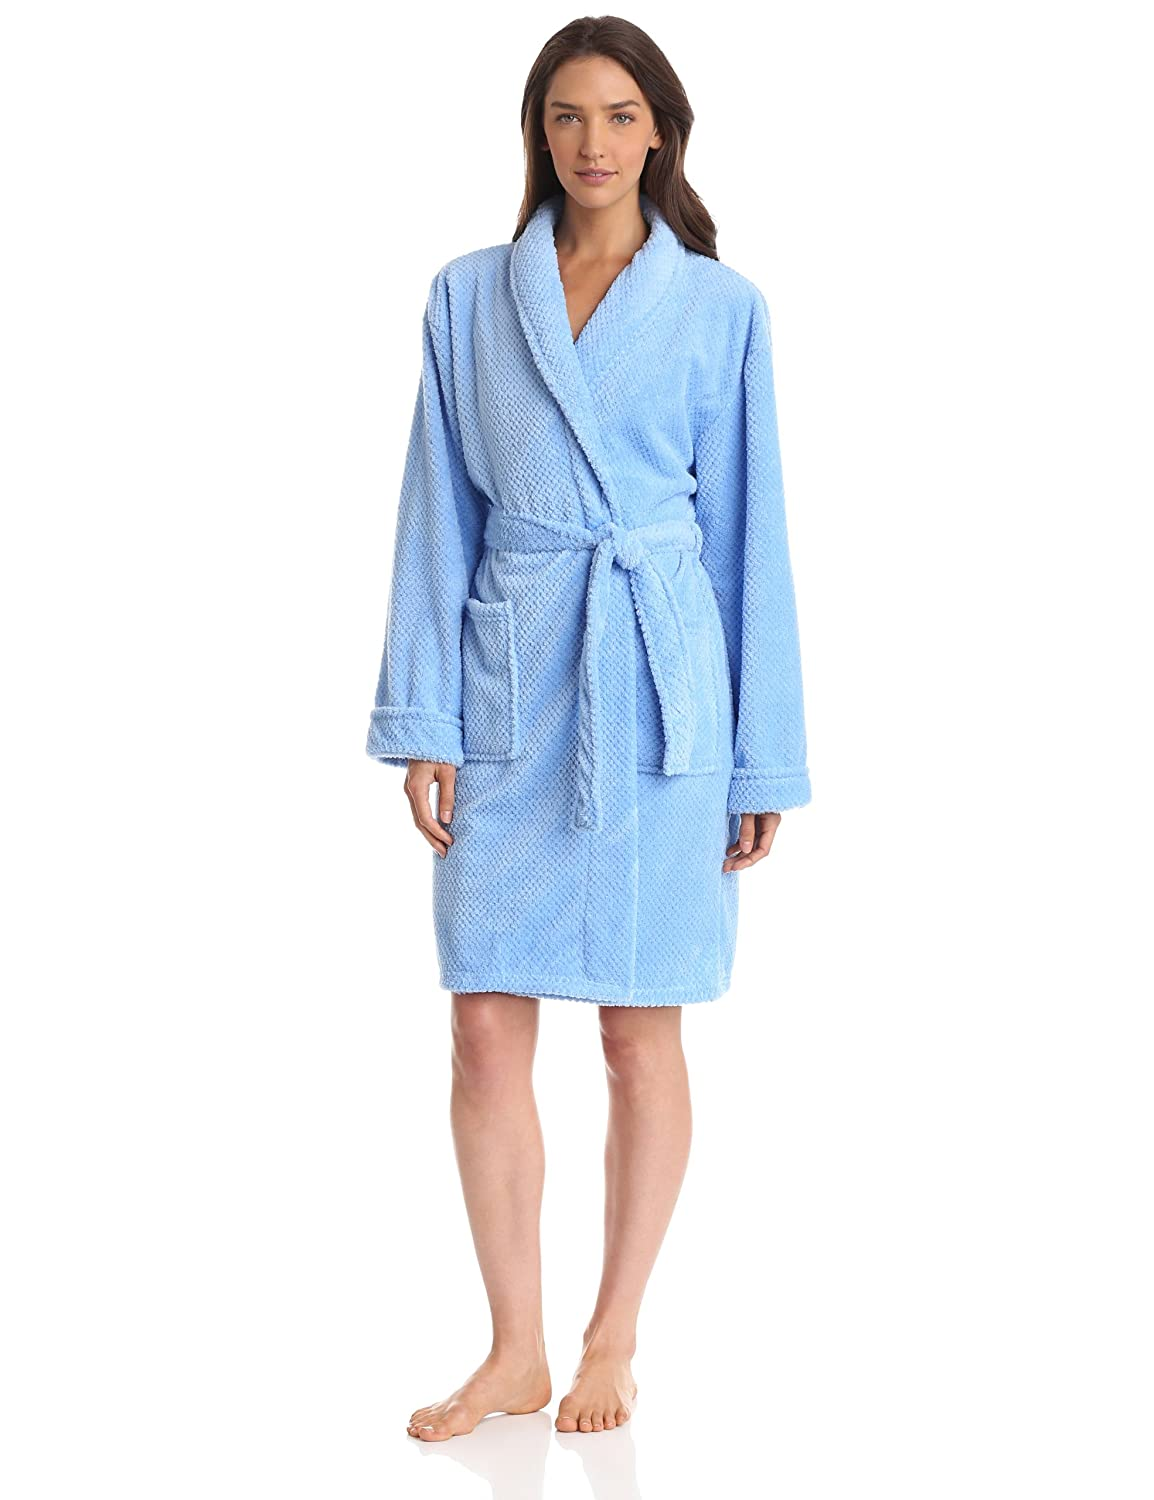 Seven Apparel Hotel Spa Collection Popcorn Jacquard Bath Robe, Aqua Northpoint Trading Inc. 655